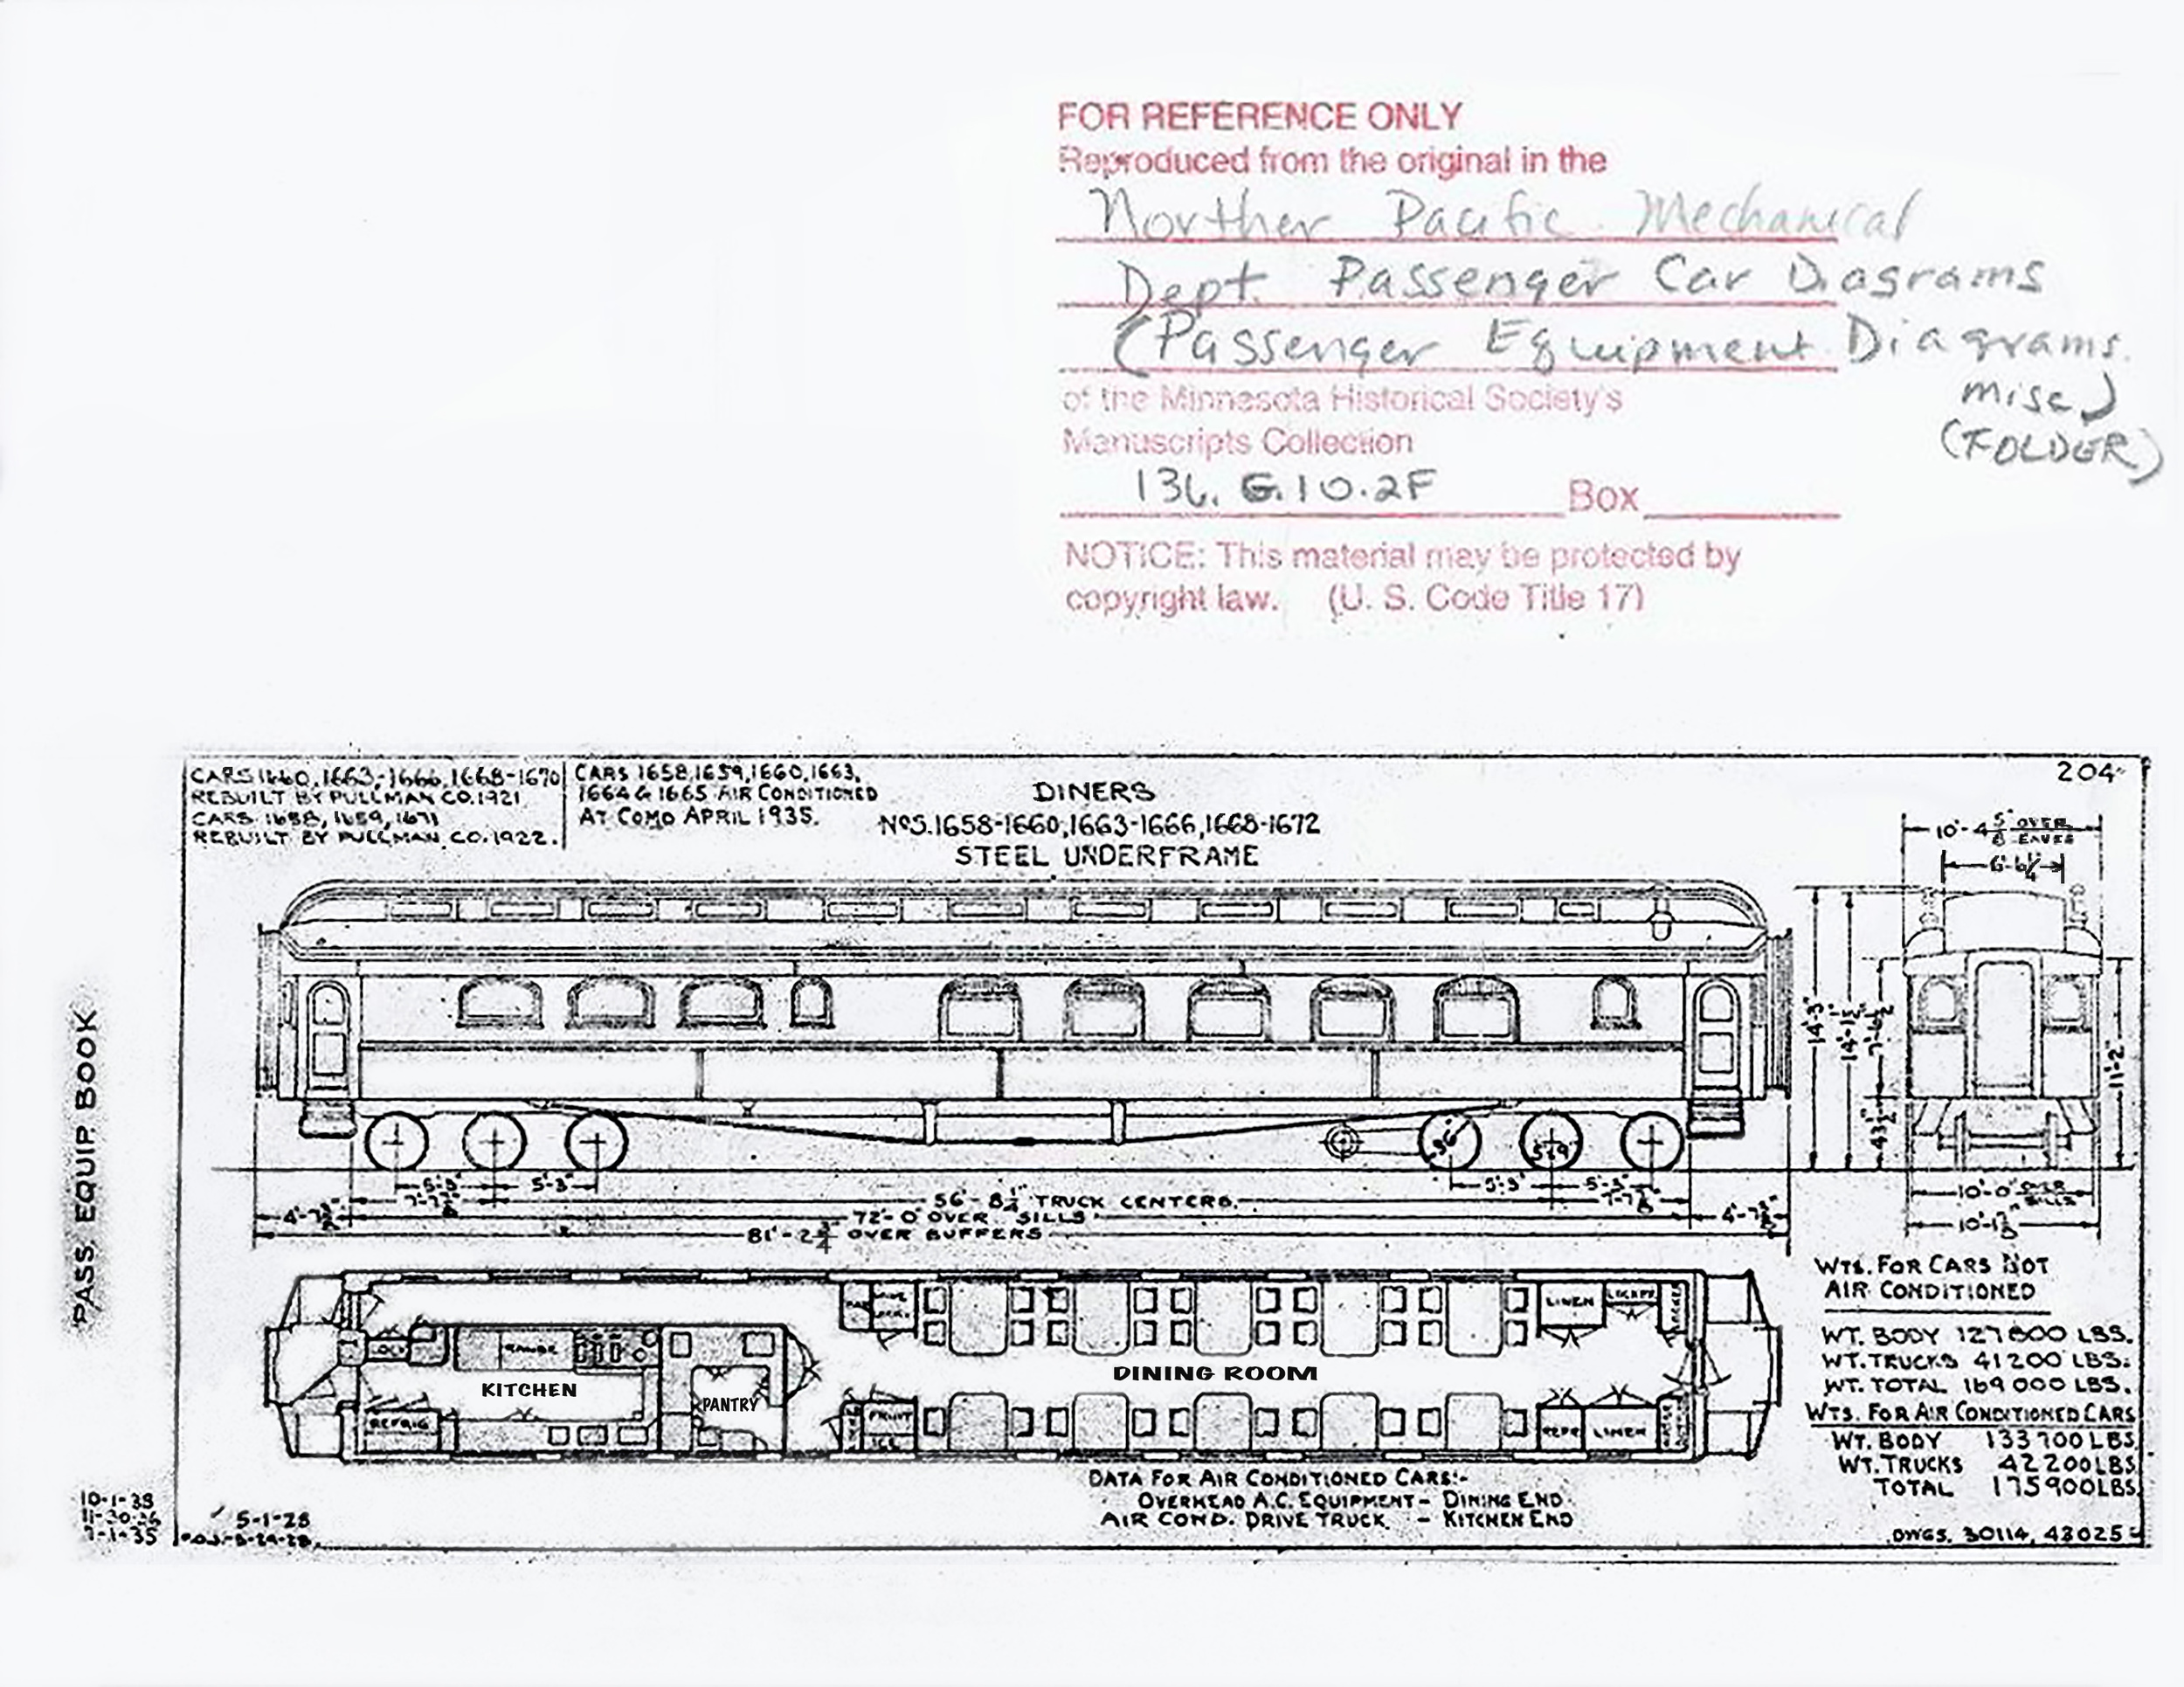 medium resolution of the original layout and design of the wooden rail car